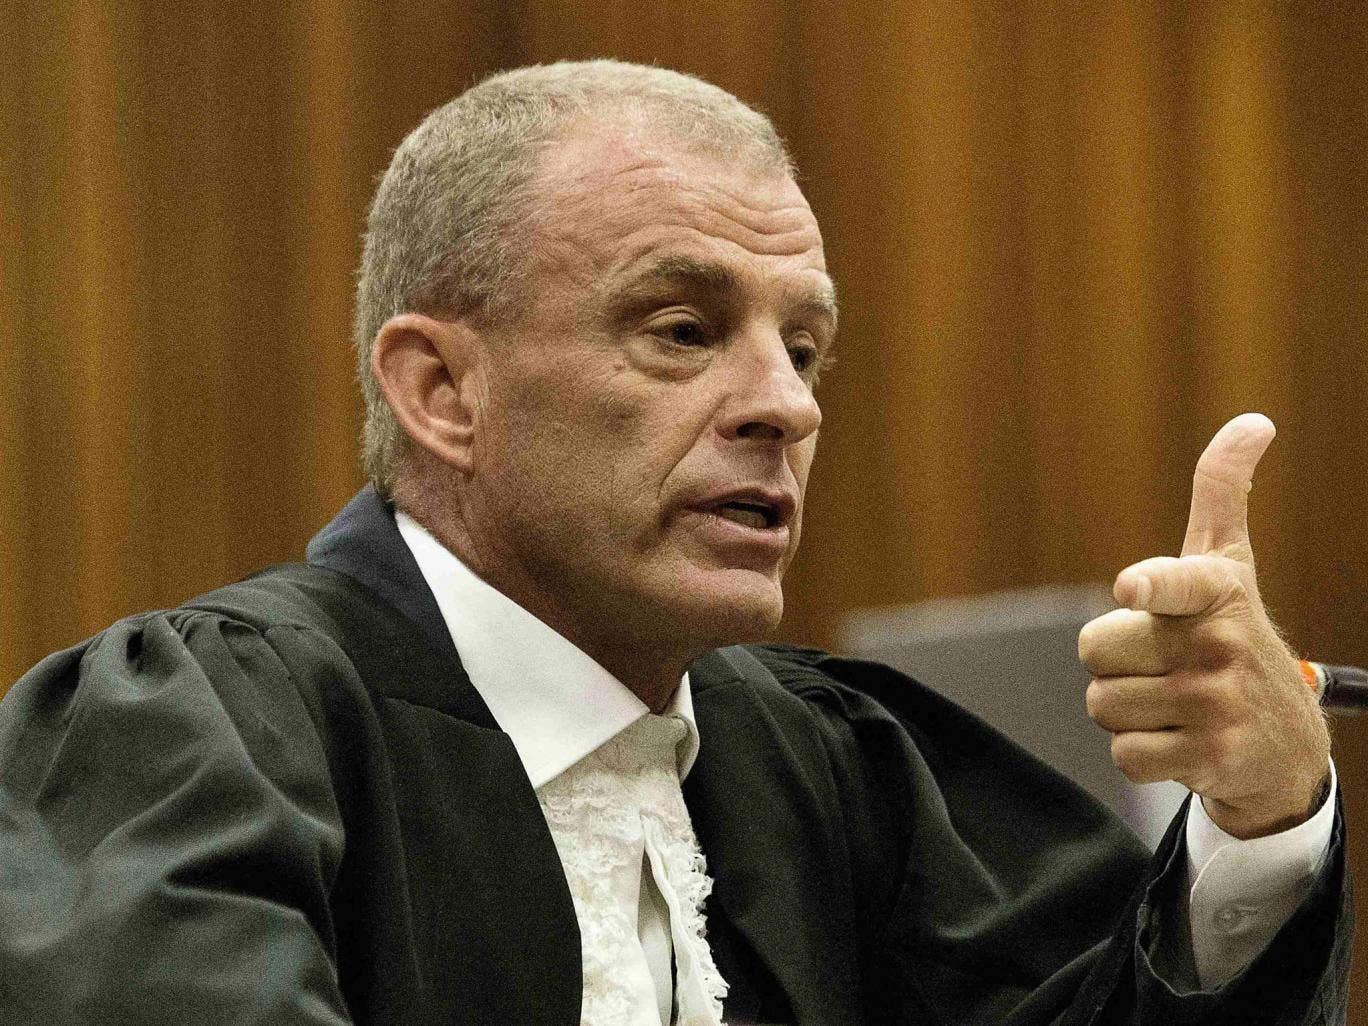 The state prosecutor Gerrie Nel cross examines the athlete Oscar Pistorius at the High Court in Pretoria yesterday